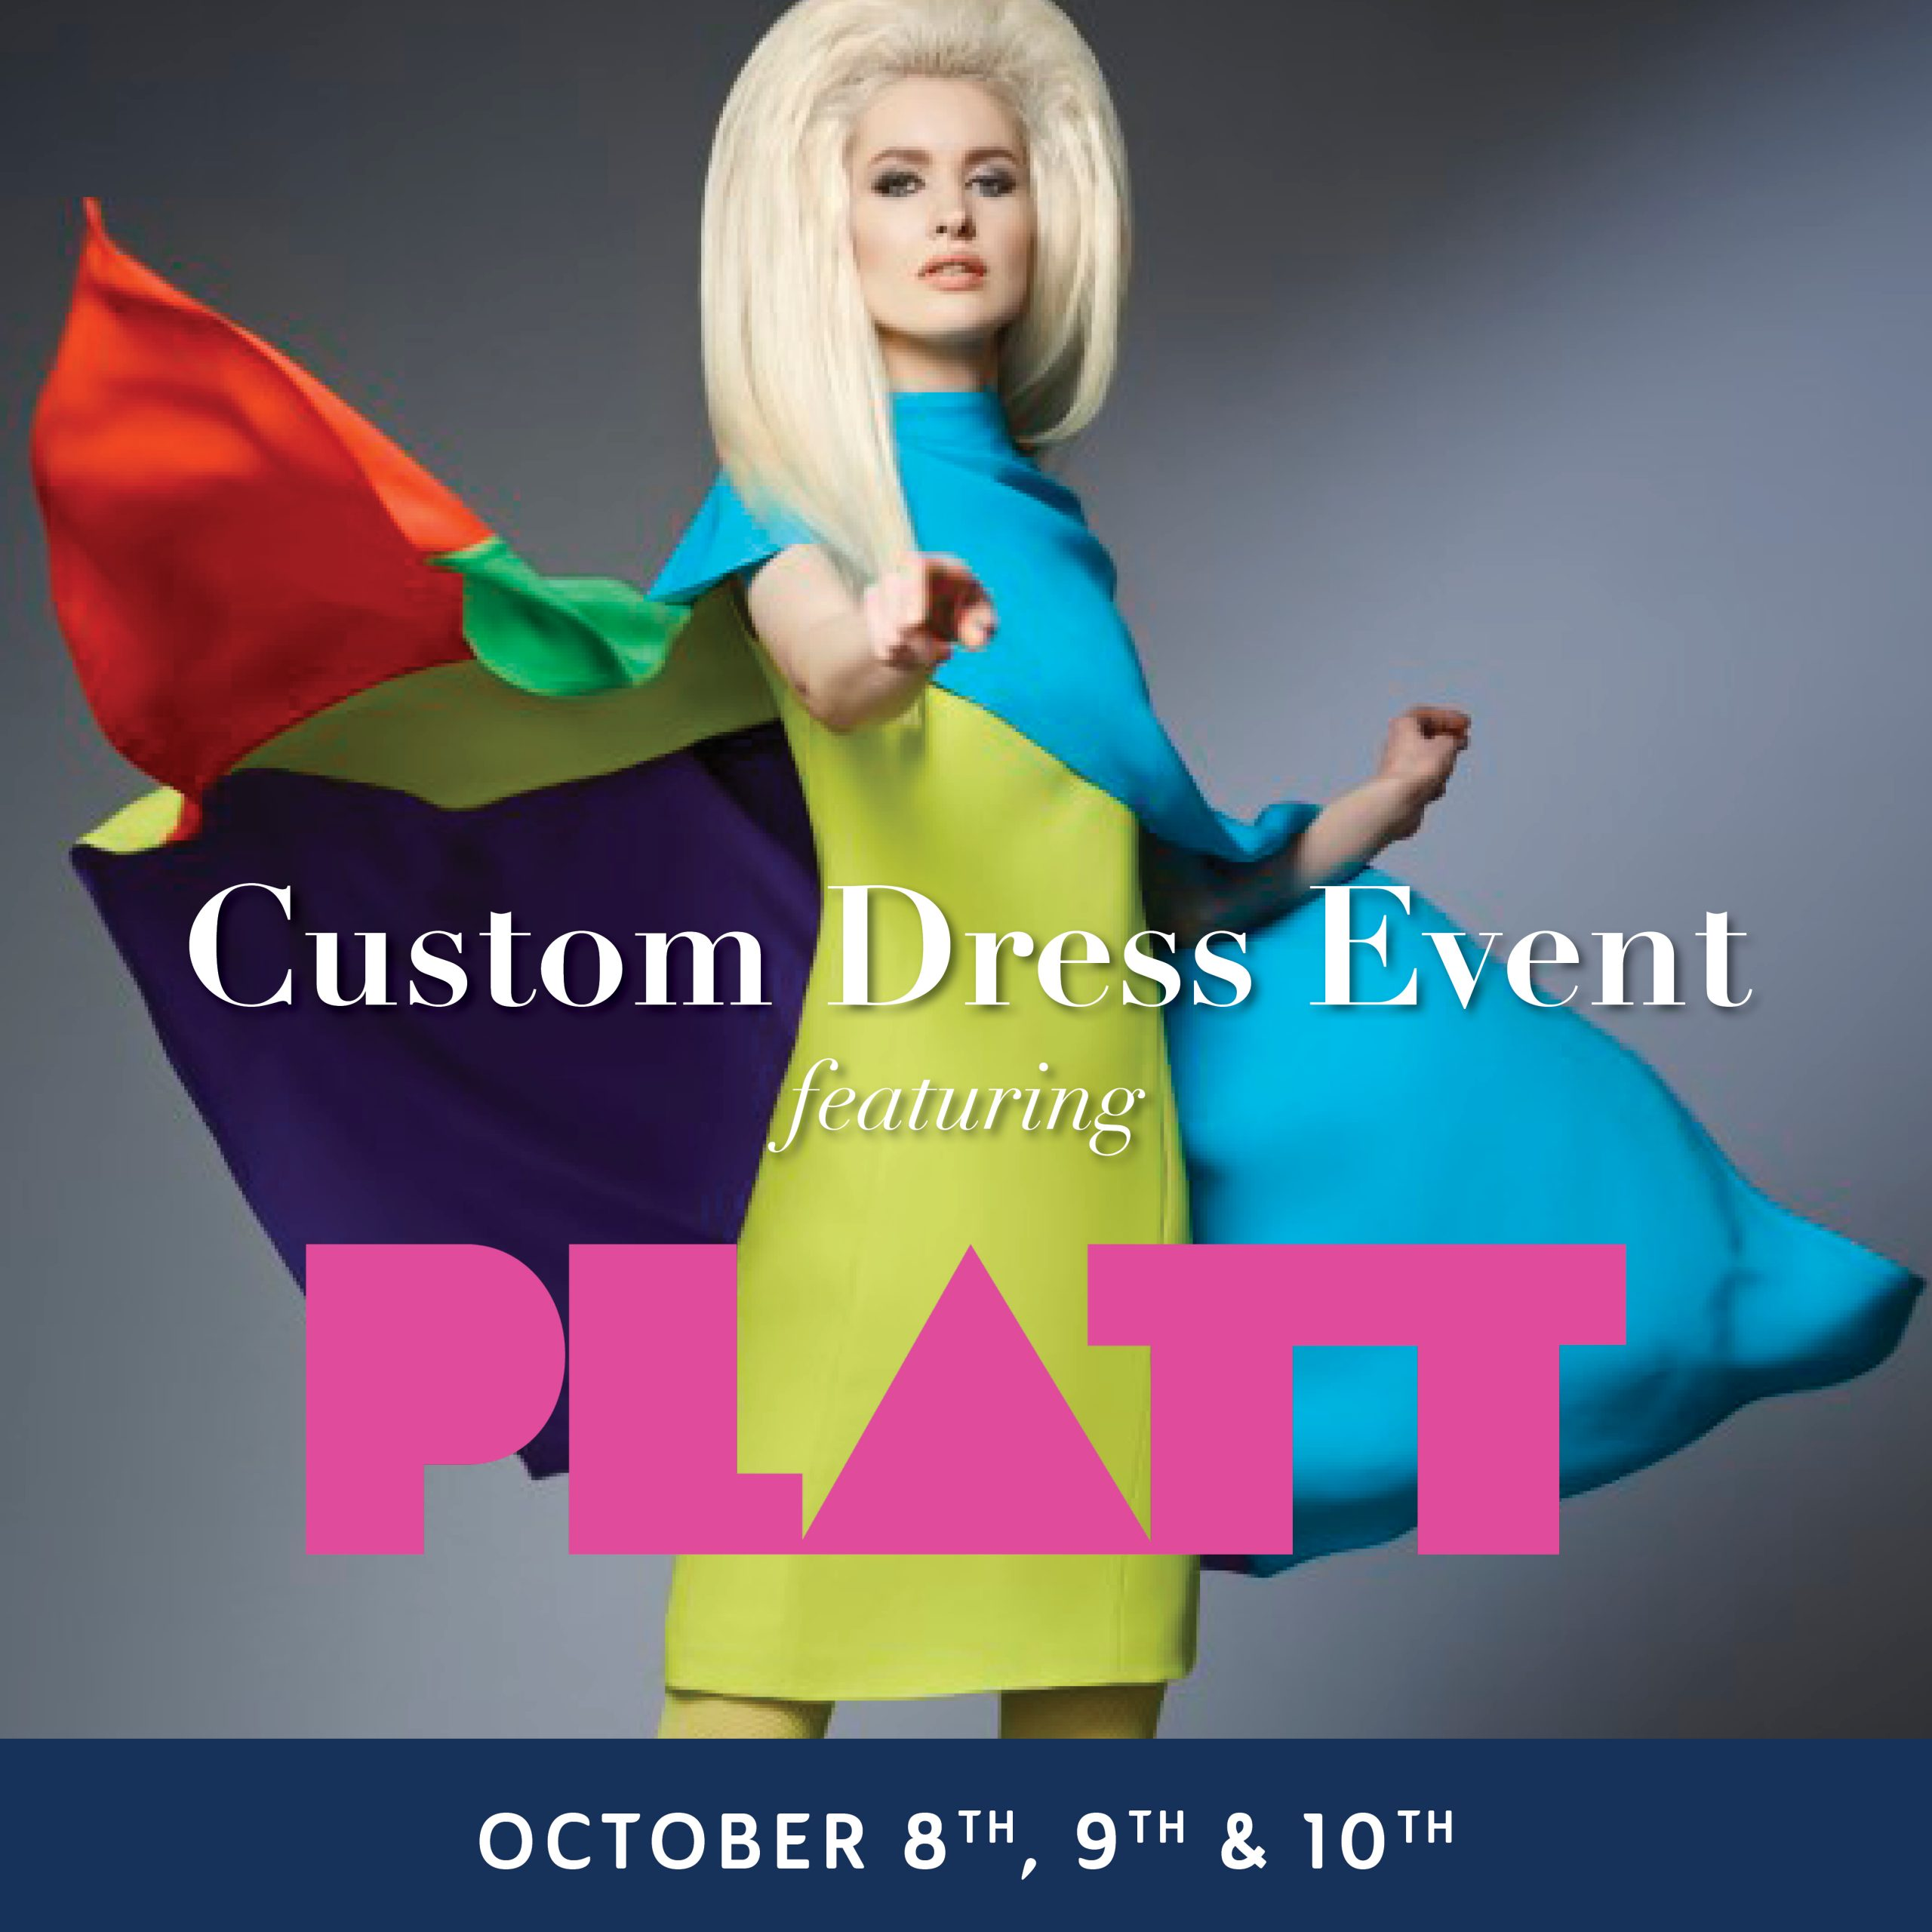 Custom Dress Event